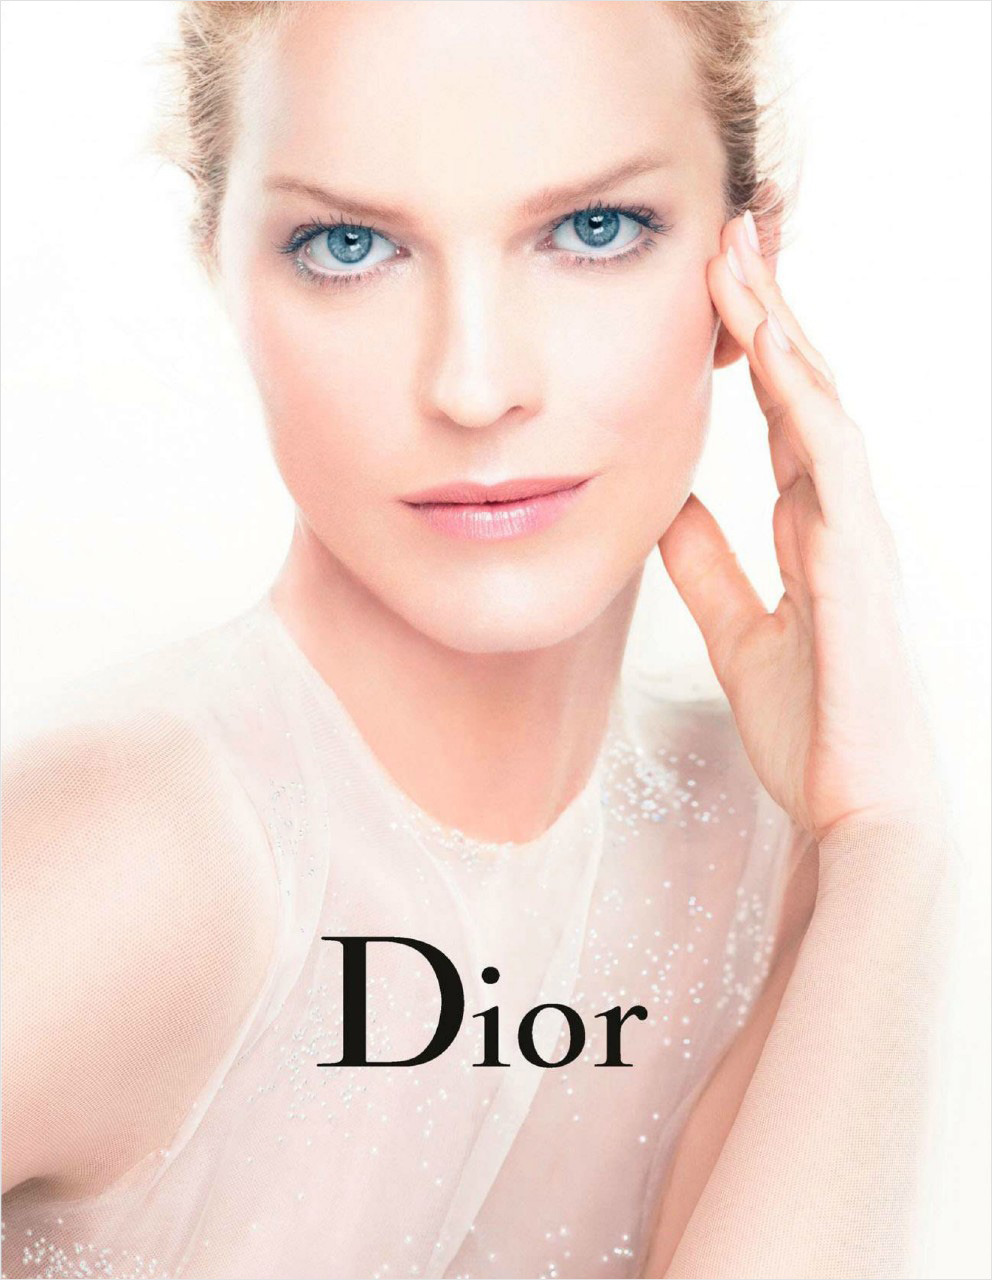 Eva Herzigová by Steven Meisel for Dior Beaty Spring/Summer 2013.